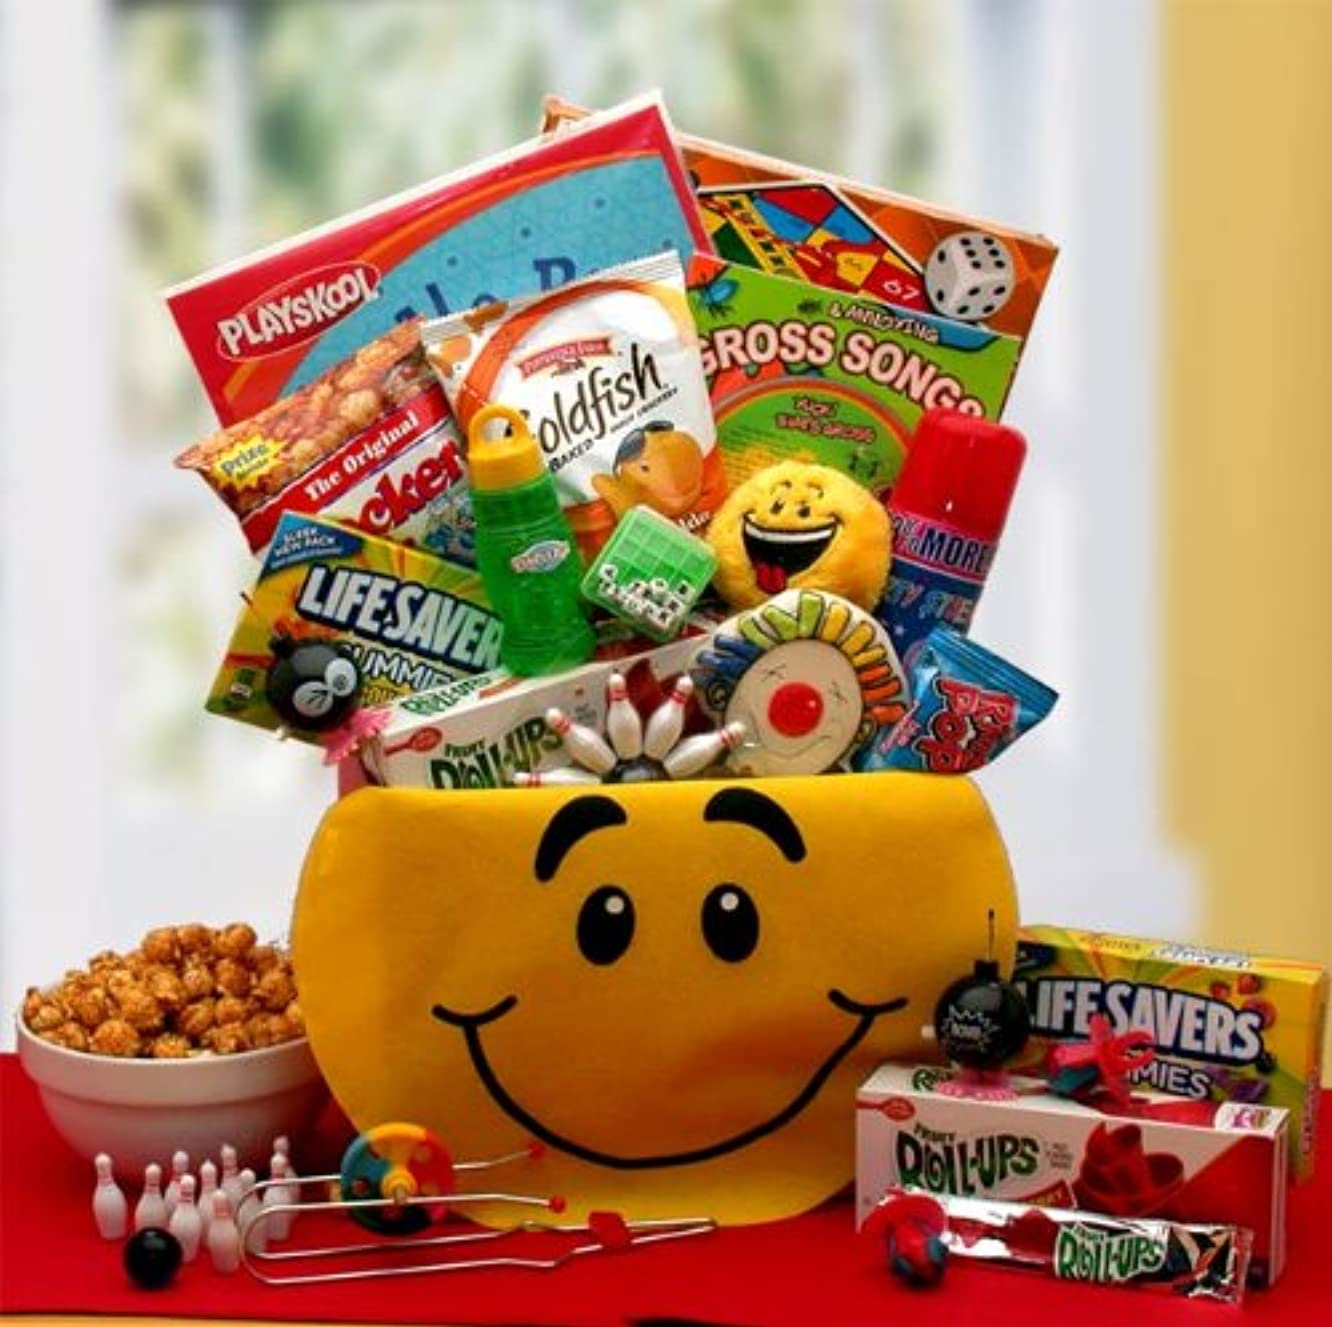 Fun Snacks and Activity Basket for Boys - Makes a Perfect Birthday, Easter, Christmas or Any Occasion Gift for Kids.